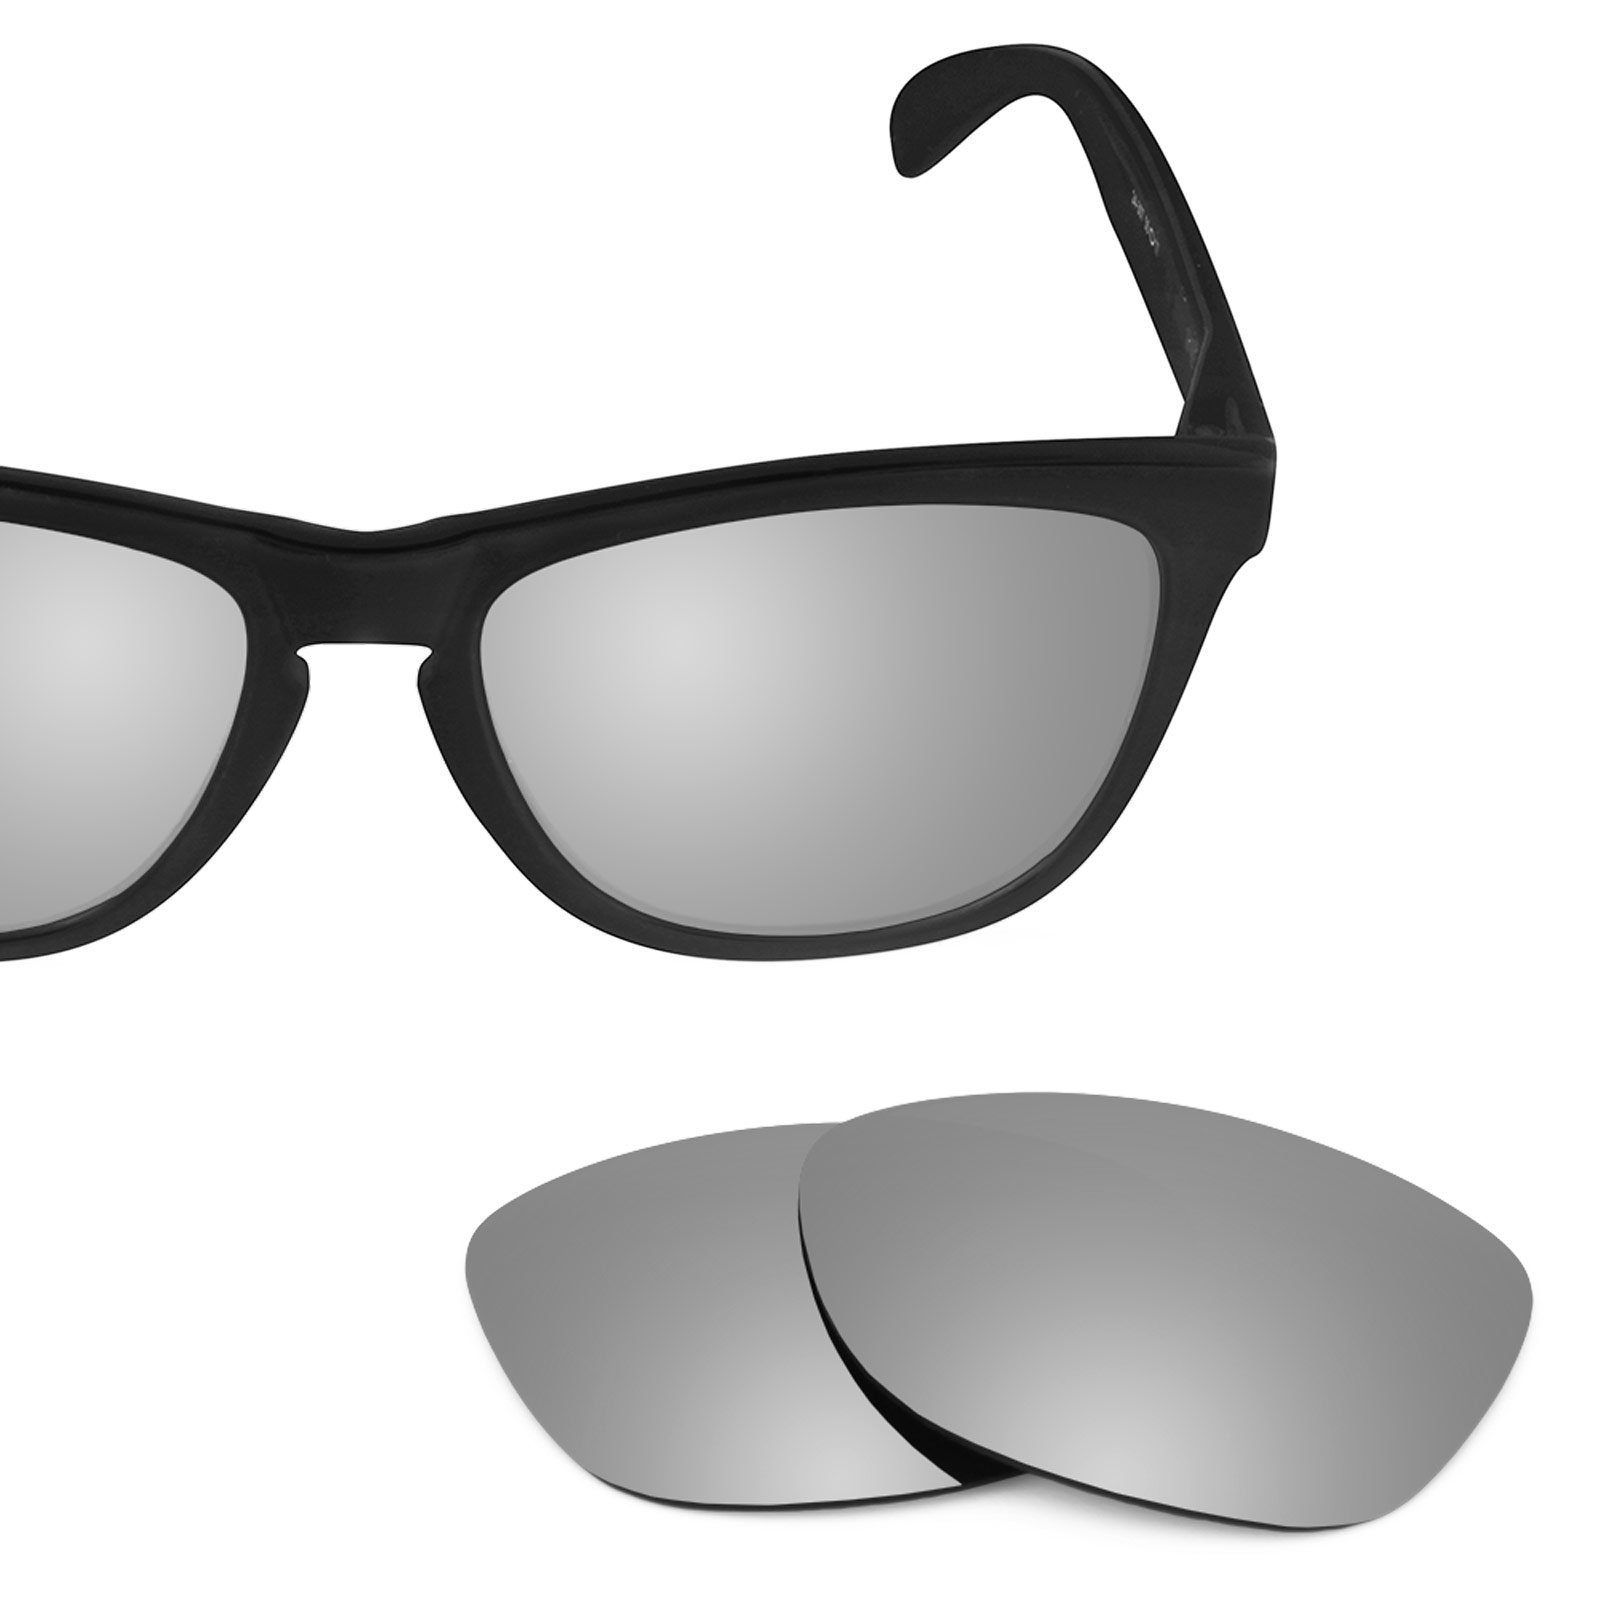 Revant Replacement Lenses for Oakley Frogskins 2 Pair Combo Pack K004 by Revant (Image #4)